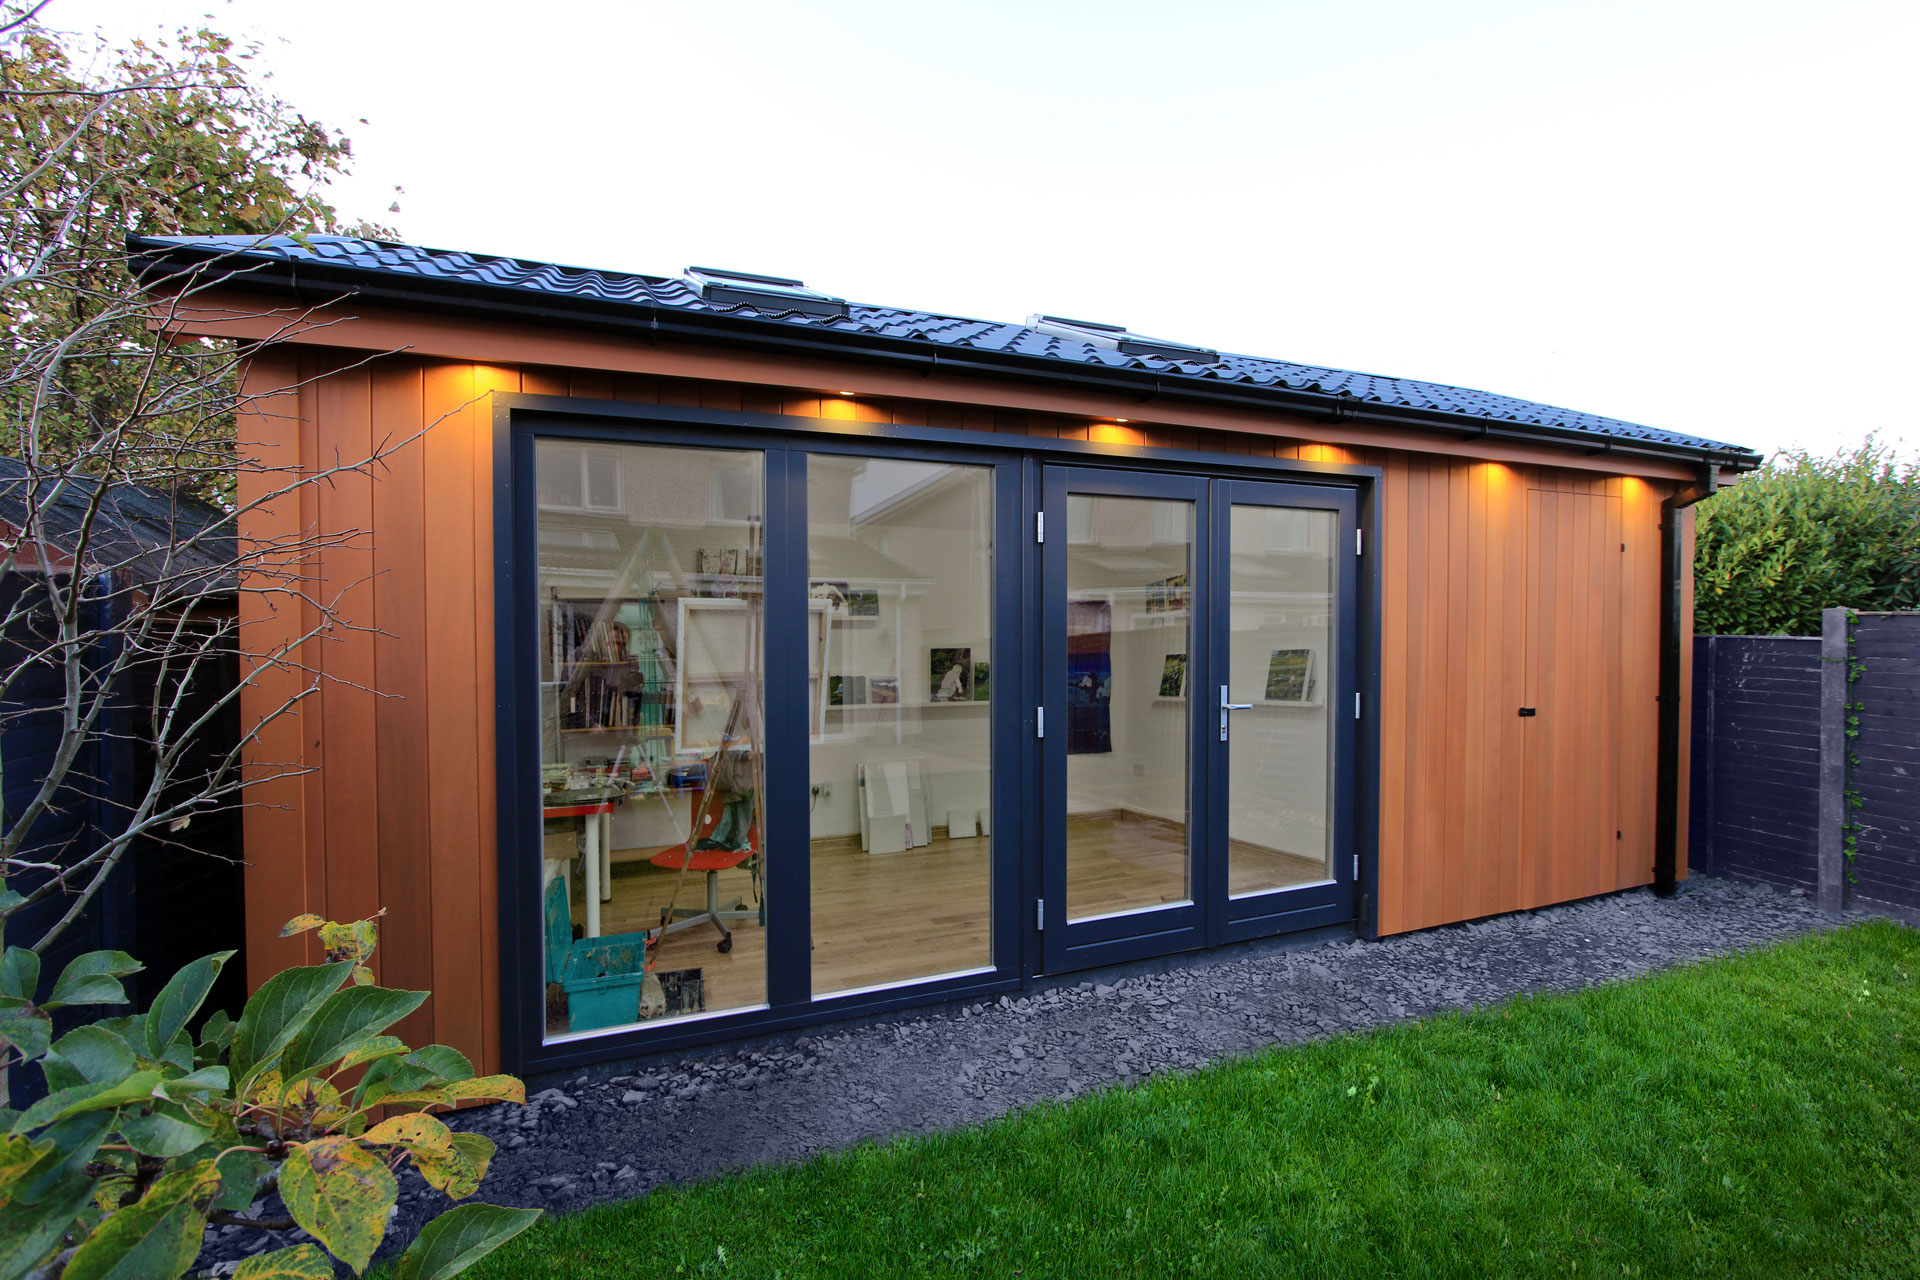 How To Design Your Own Home Plans The Garden Office Company Ecos Ireland